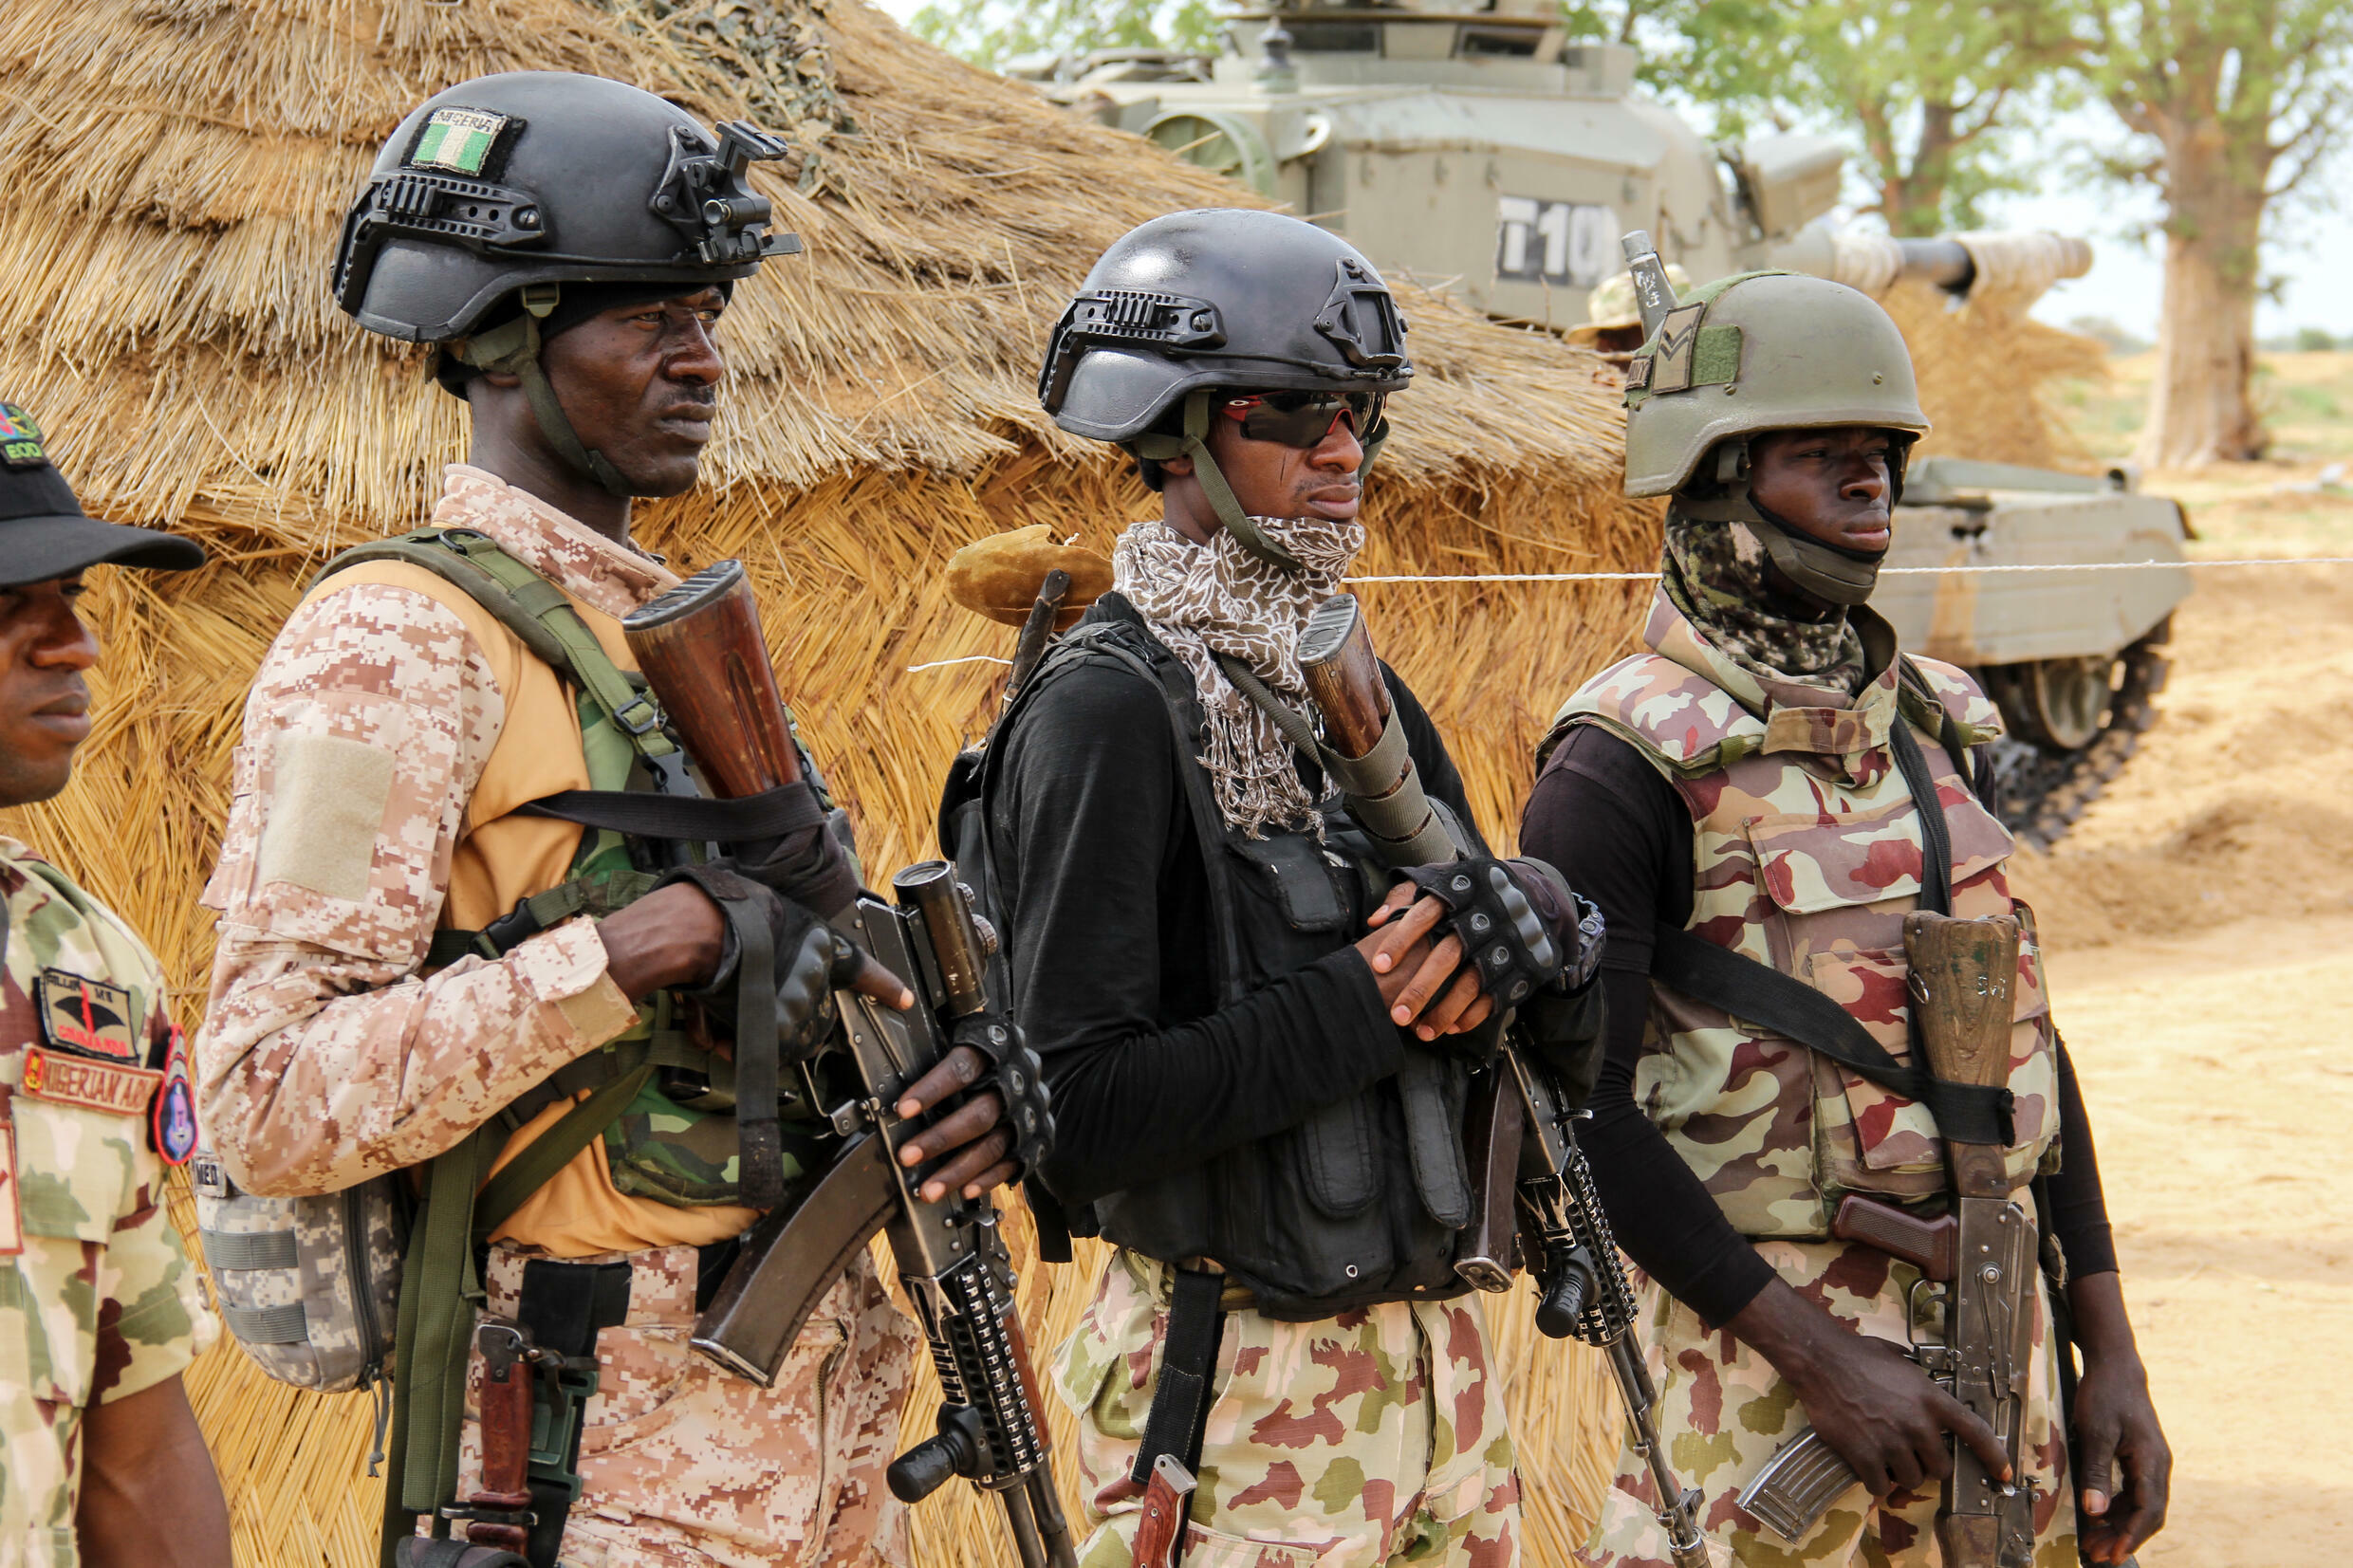 Nigeria's armed forces are struggling with a jihadist insurgency, as well as ethnic unrest and brutal attacks by criminal gangs